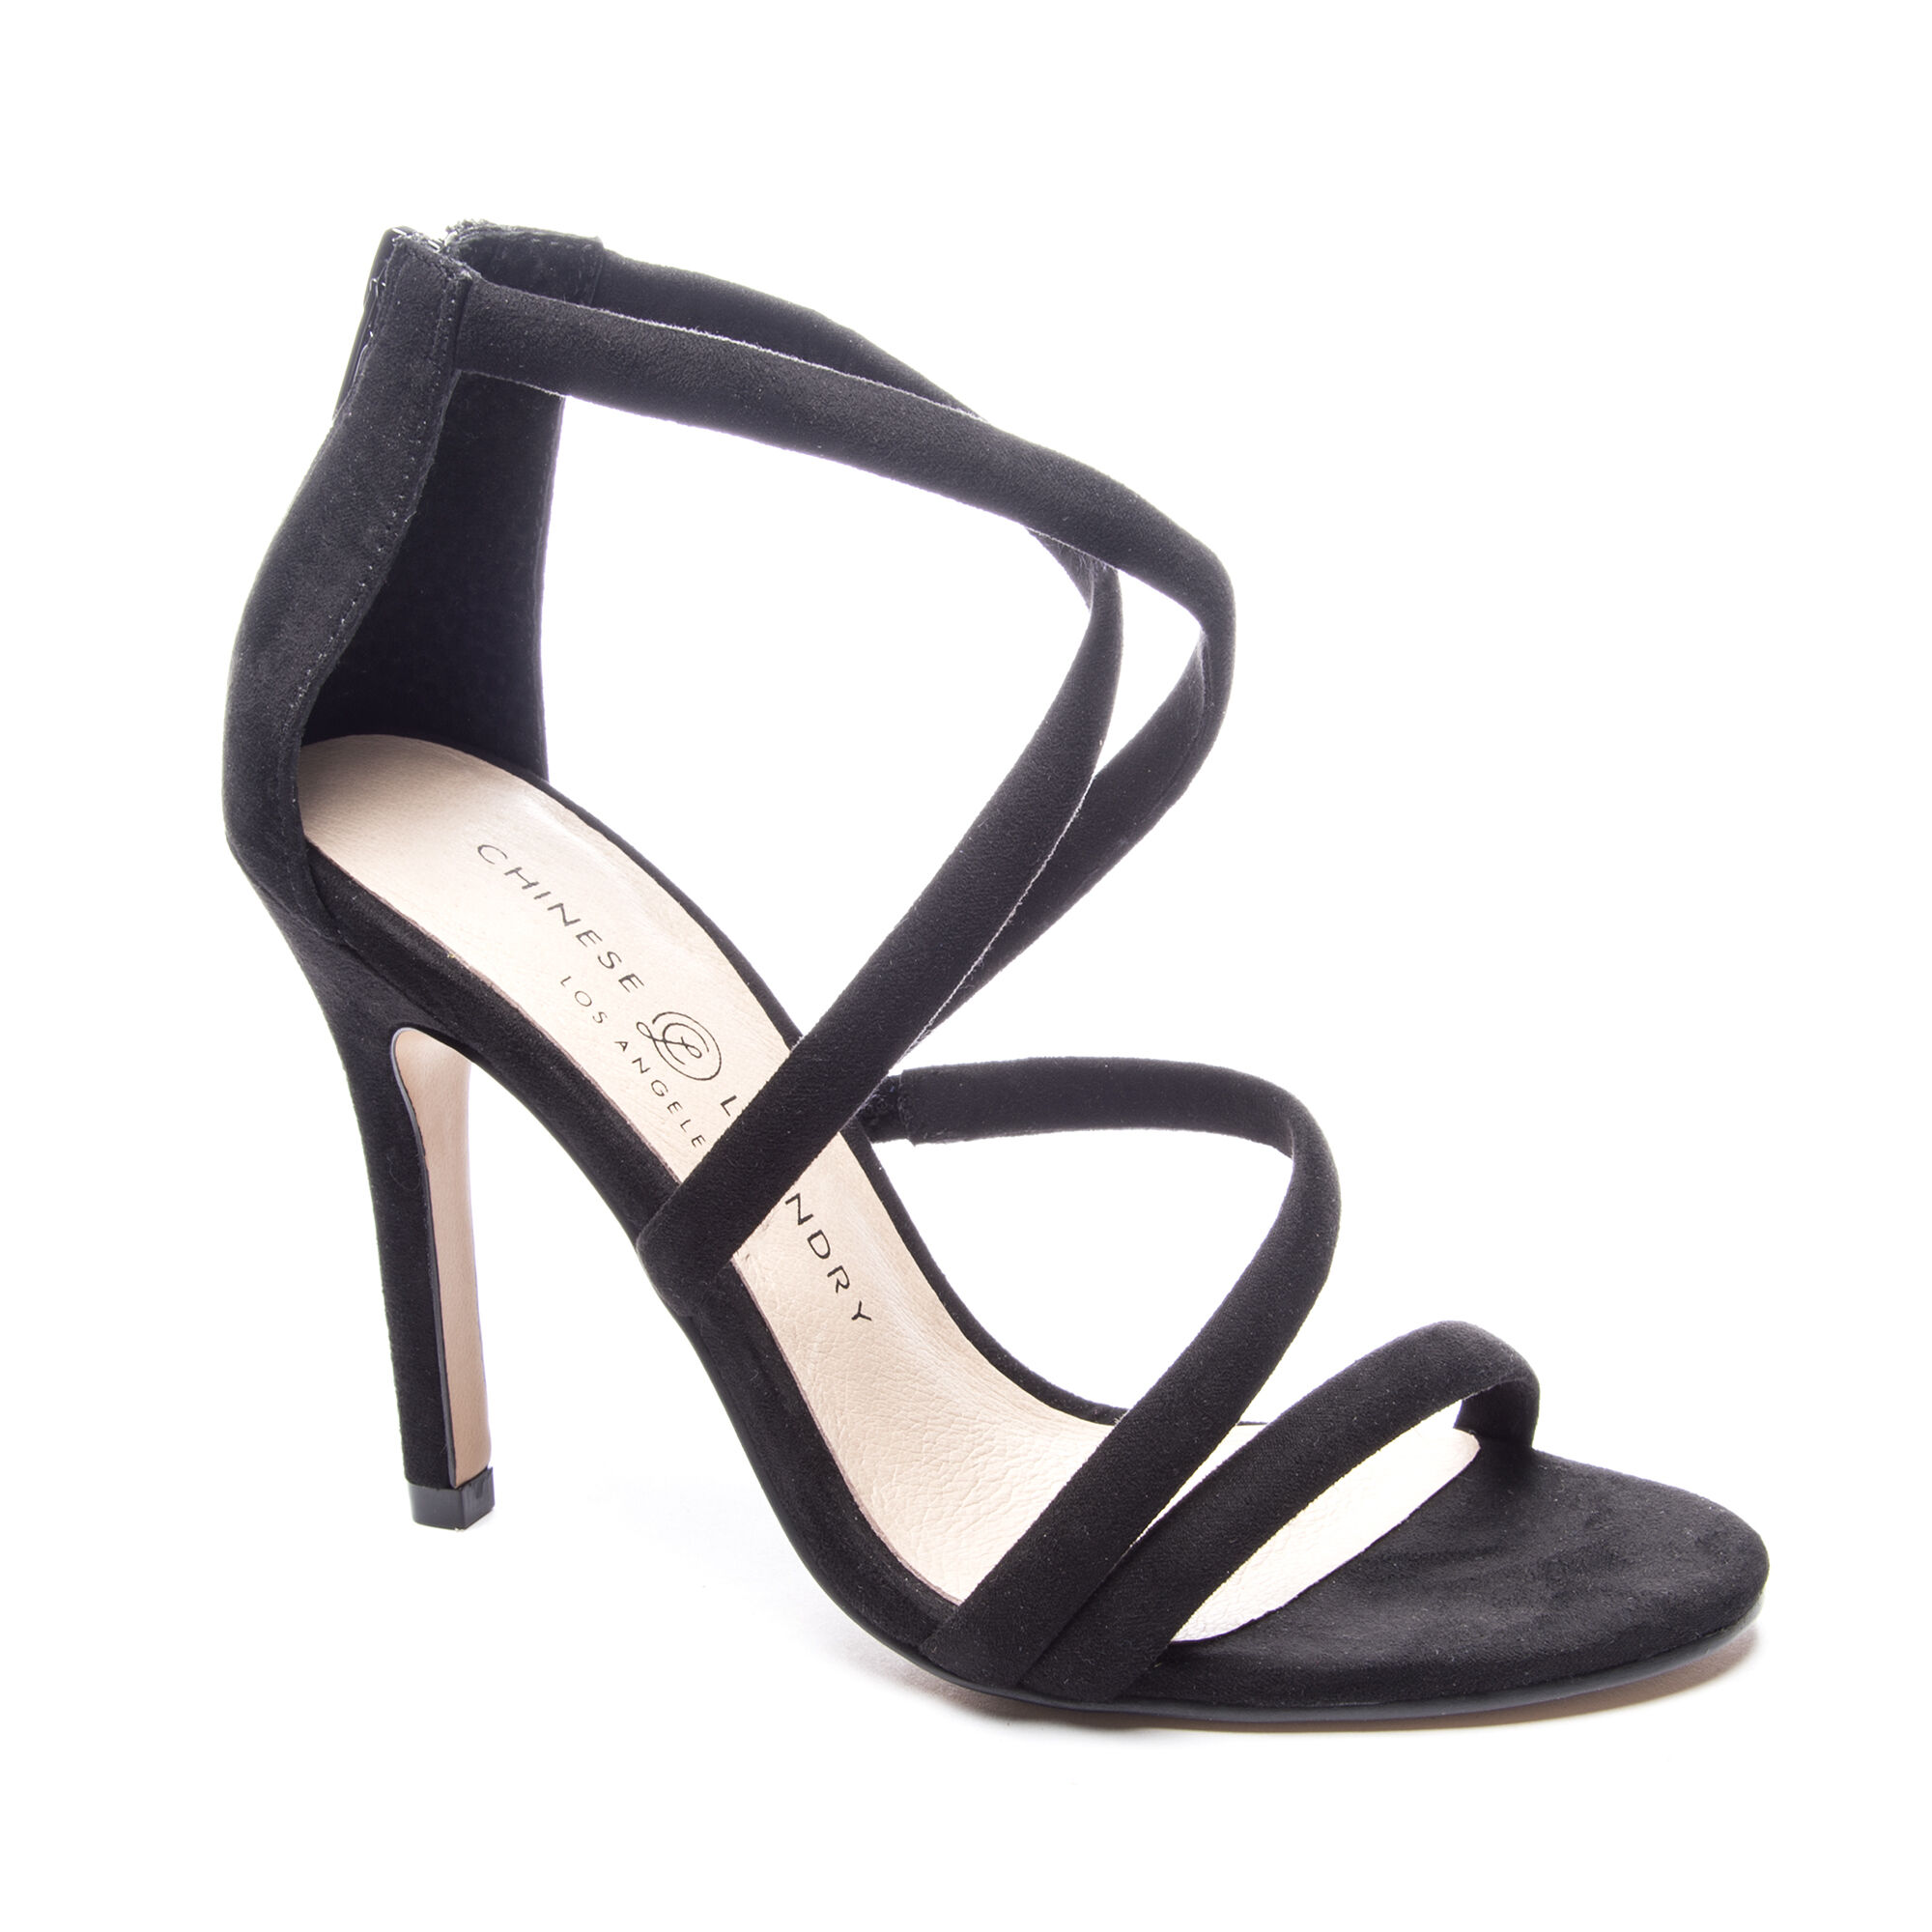 1668d24613 Chinese Laundry Jillian Micro Suede Strappy Heel